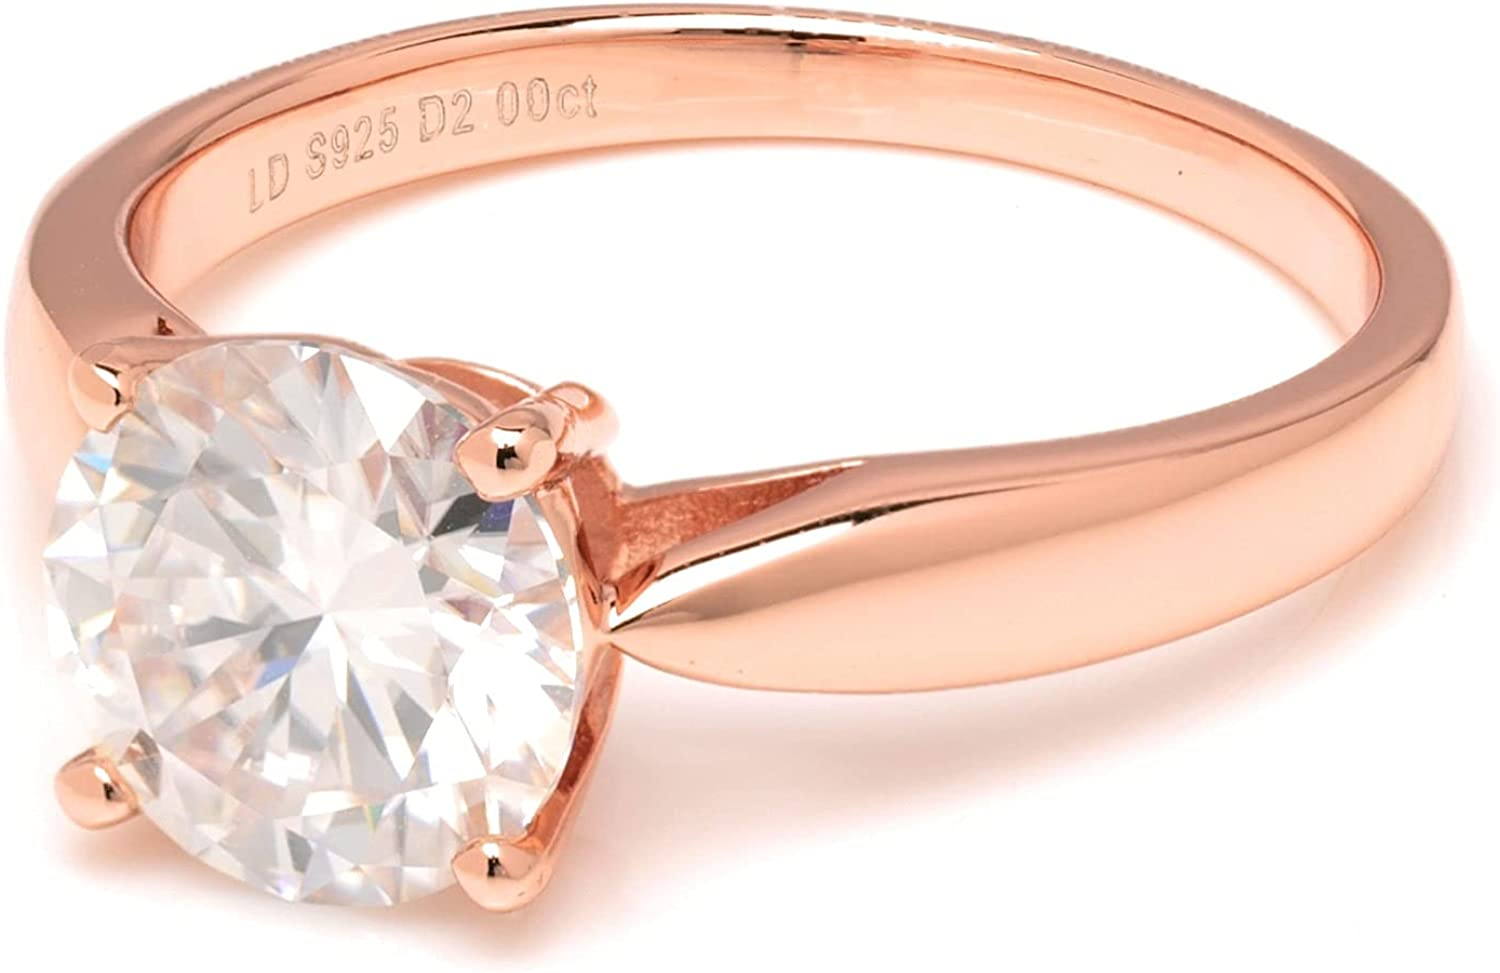 Rose Gold Over S925 Round Cut 2 Carats Genuine Moissanite Diamond Couple Anniversary Ring